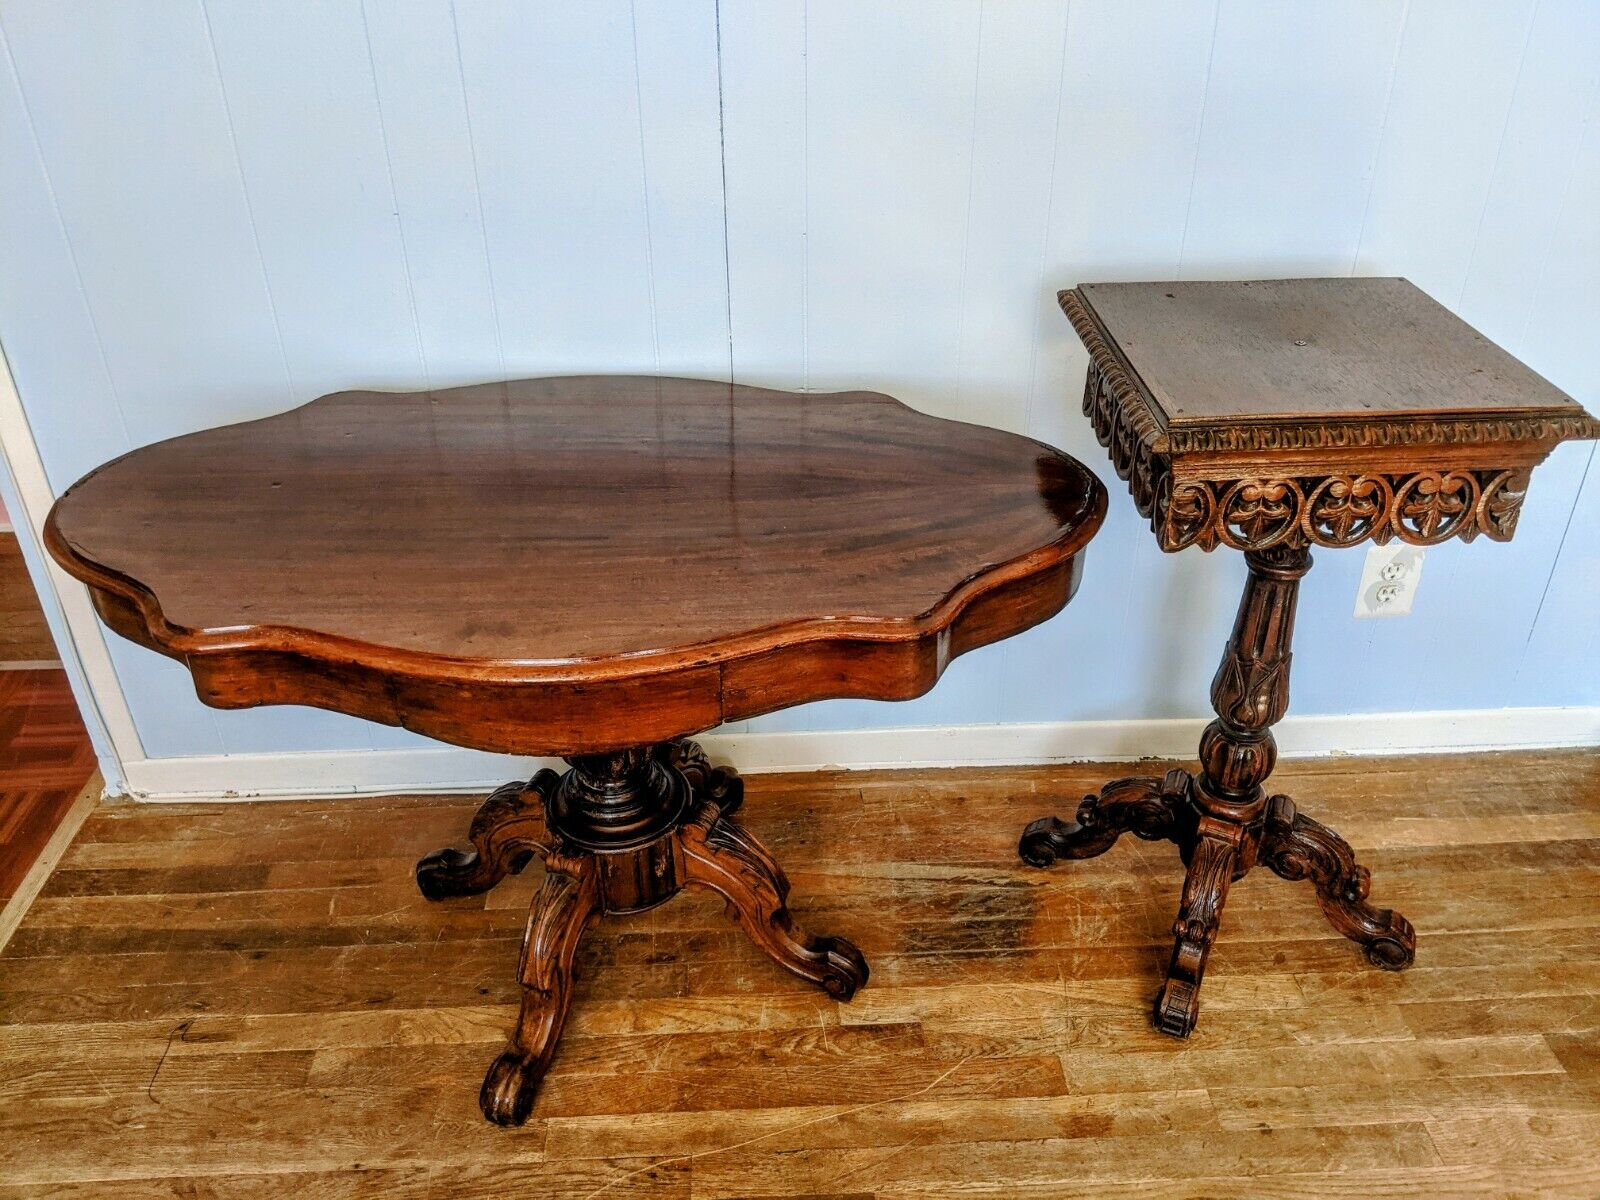 Antique Oval Table With End Table LE RUISSANT COULANT 1930 s. - $1,995.00